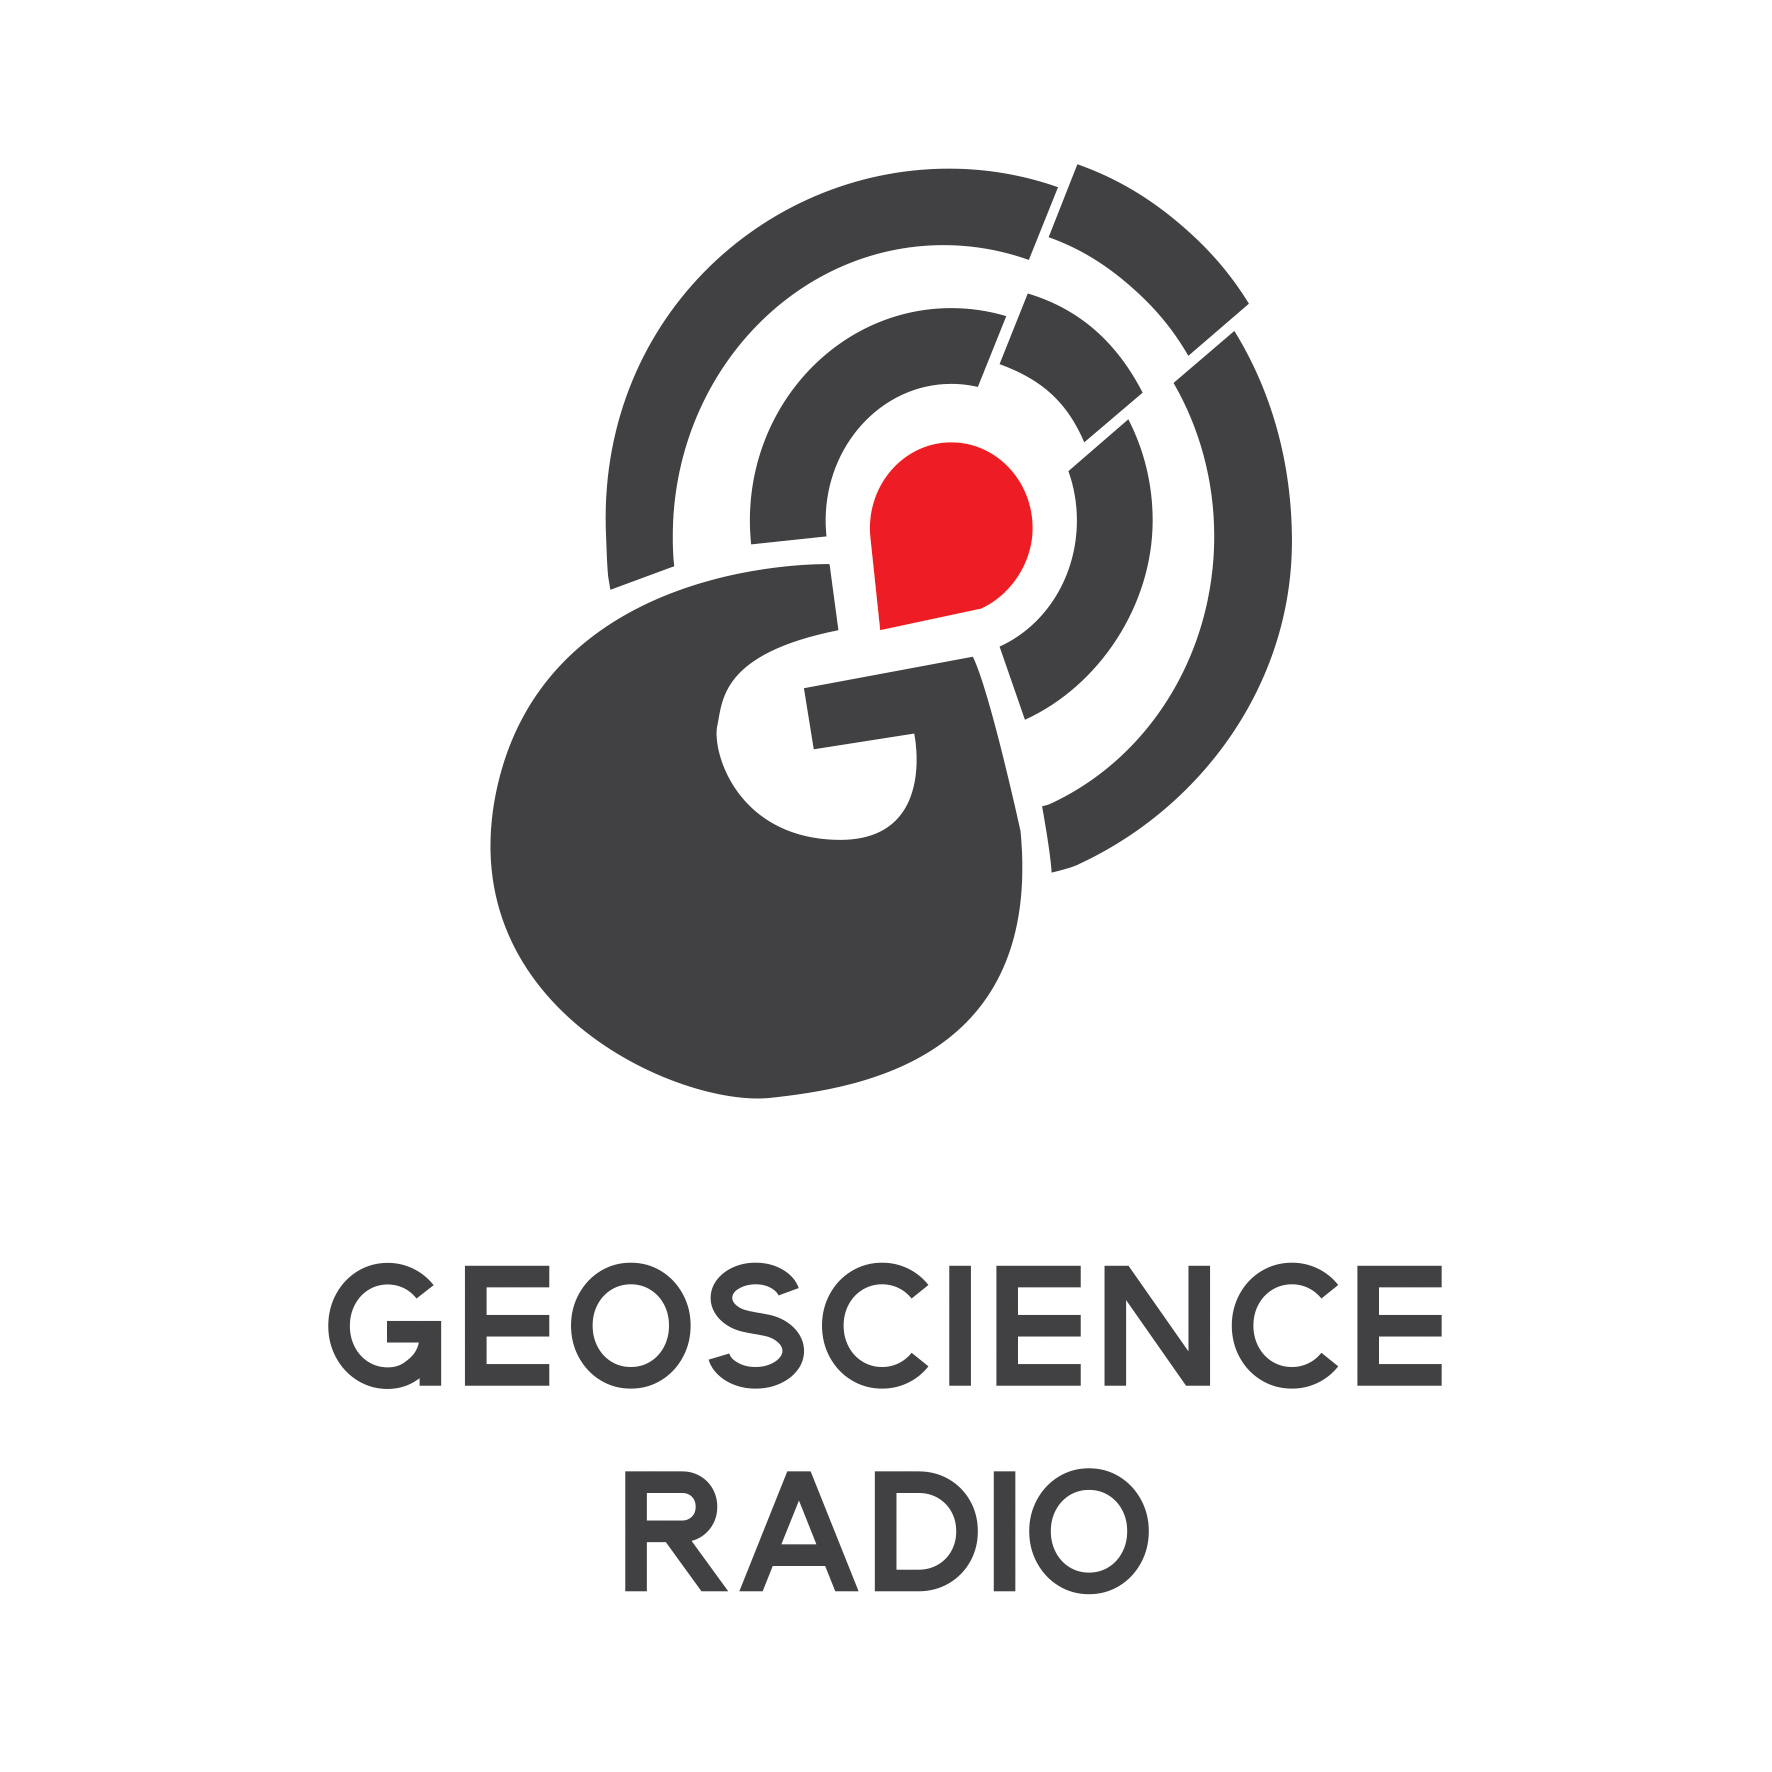 Geoscience Radio (podcast)